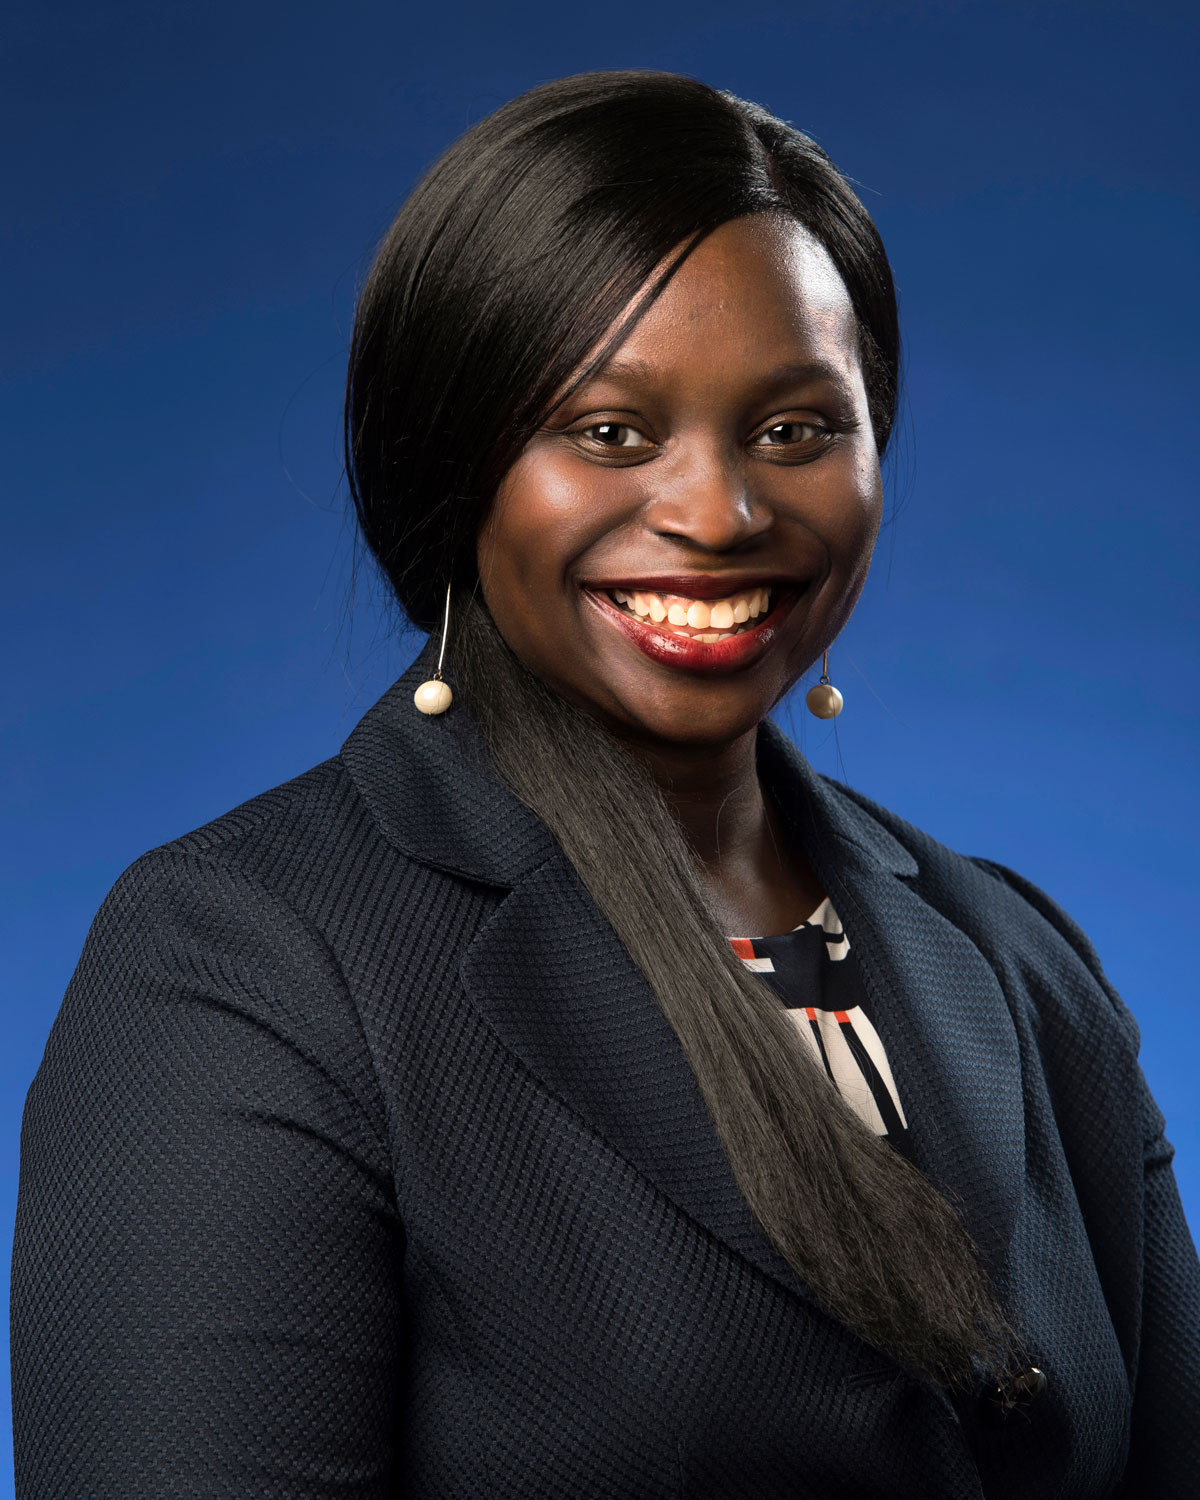 Professional headshot photograph of Edo-Abasi McGee, PharmD, BCPS.